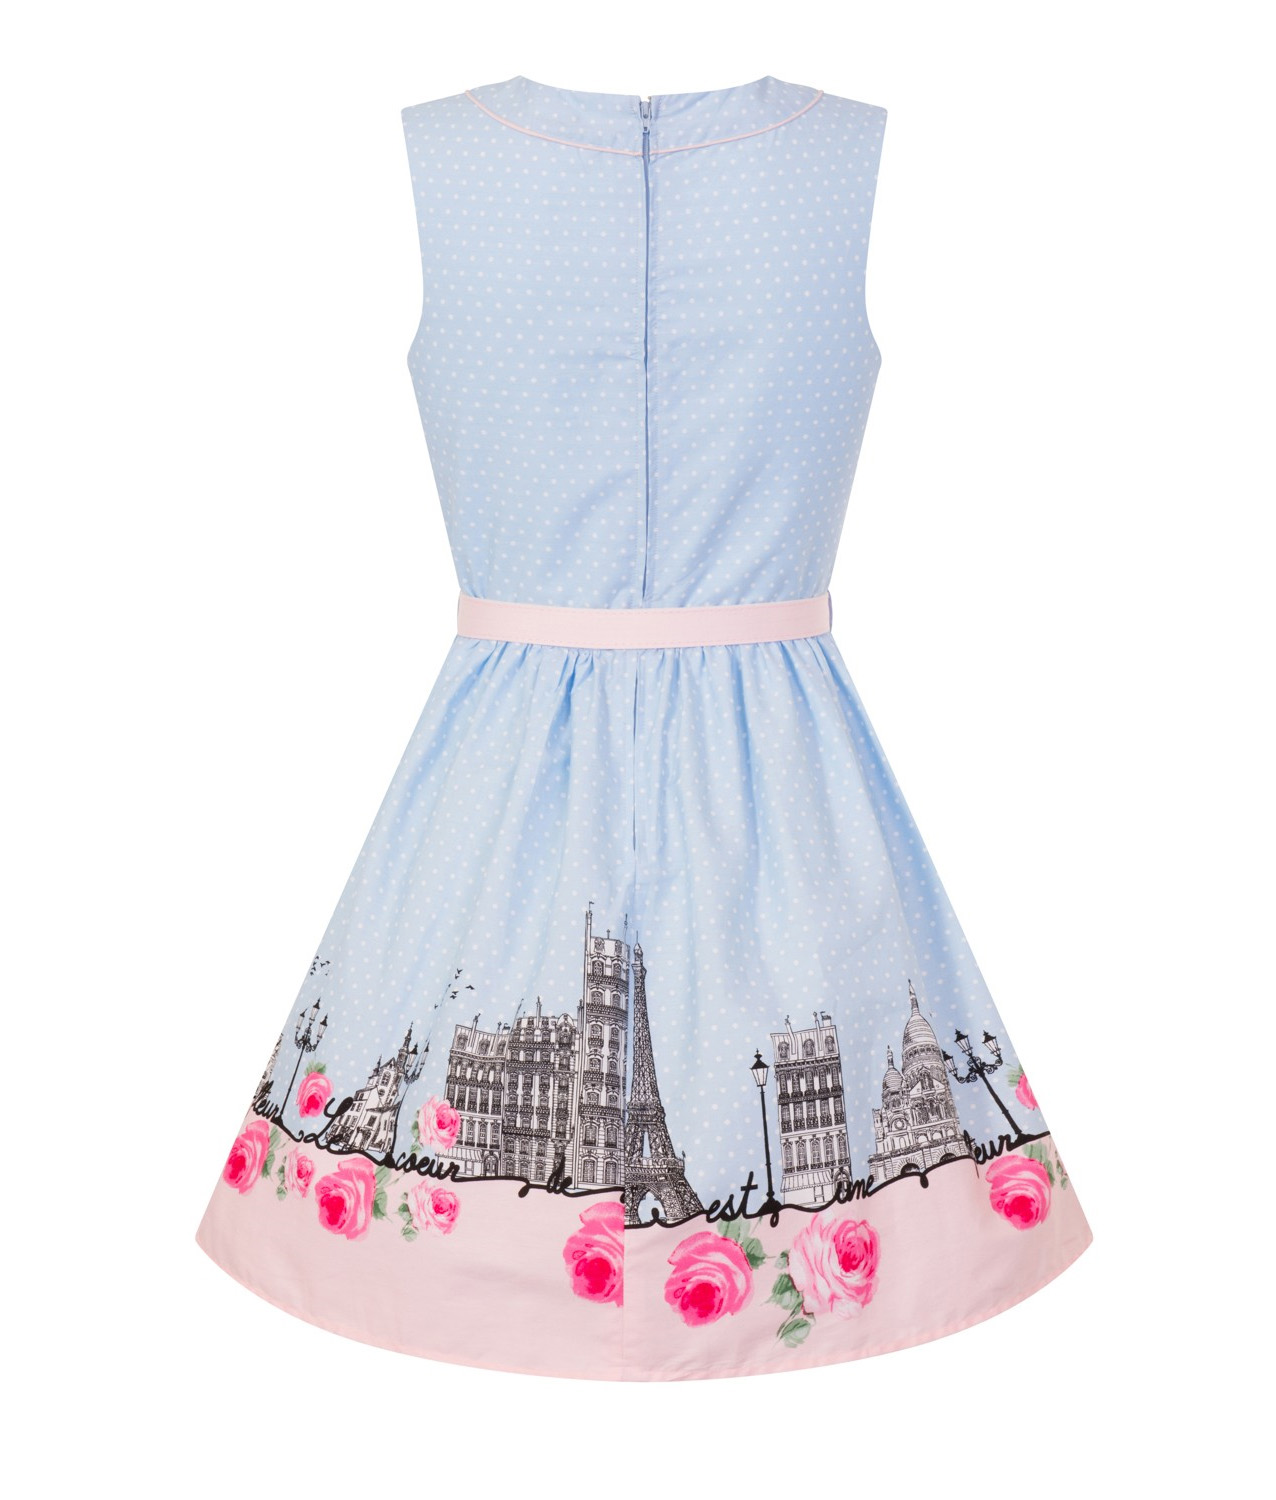 Hell-Bunny-50s-Vintage-Blue-Polka-Dot-PANAME-Mini-Dress-Paris-All-Sizes thumbnail 7